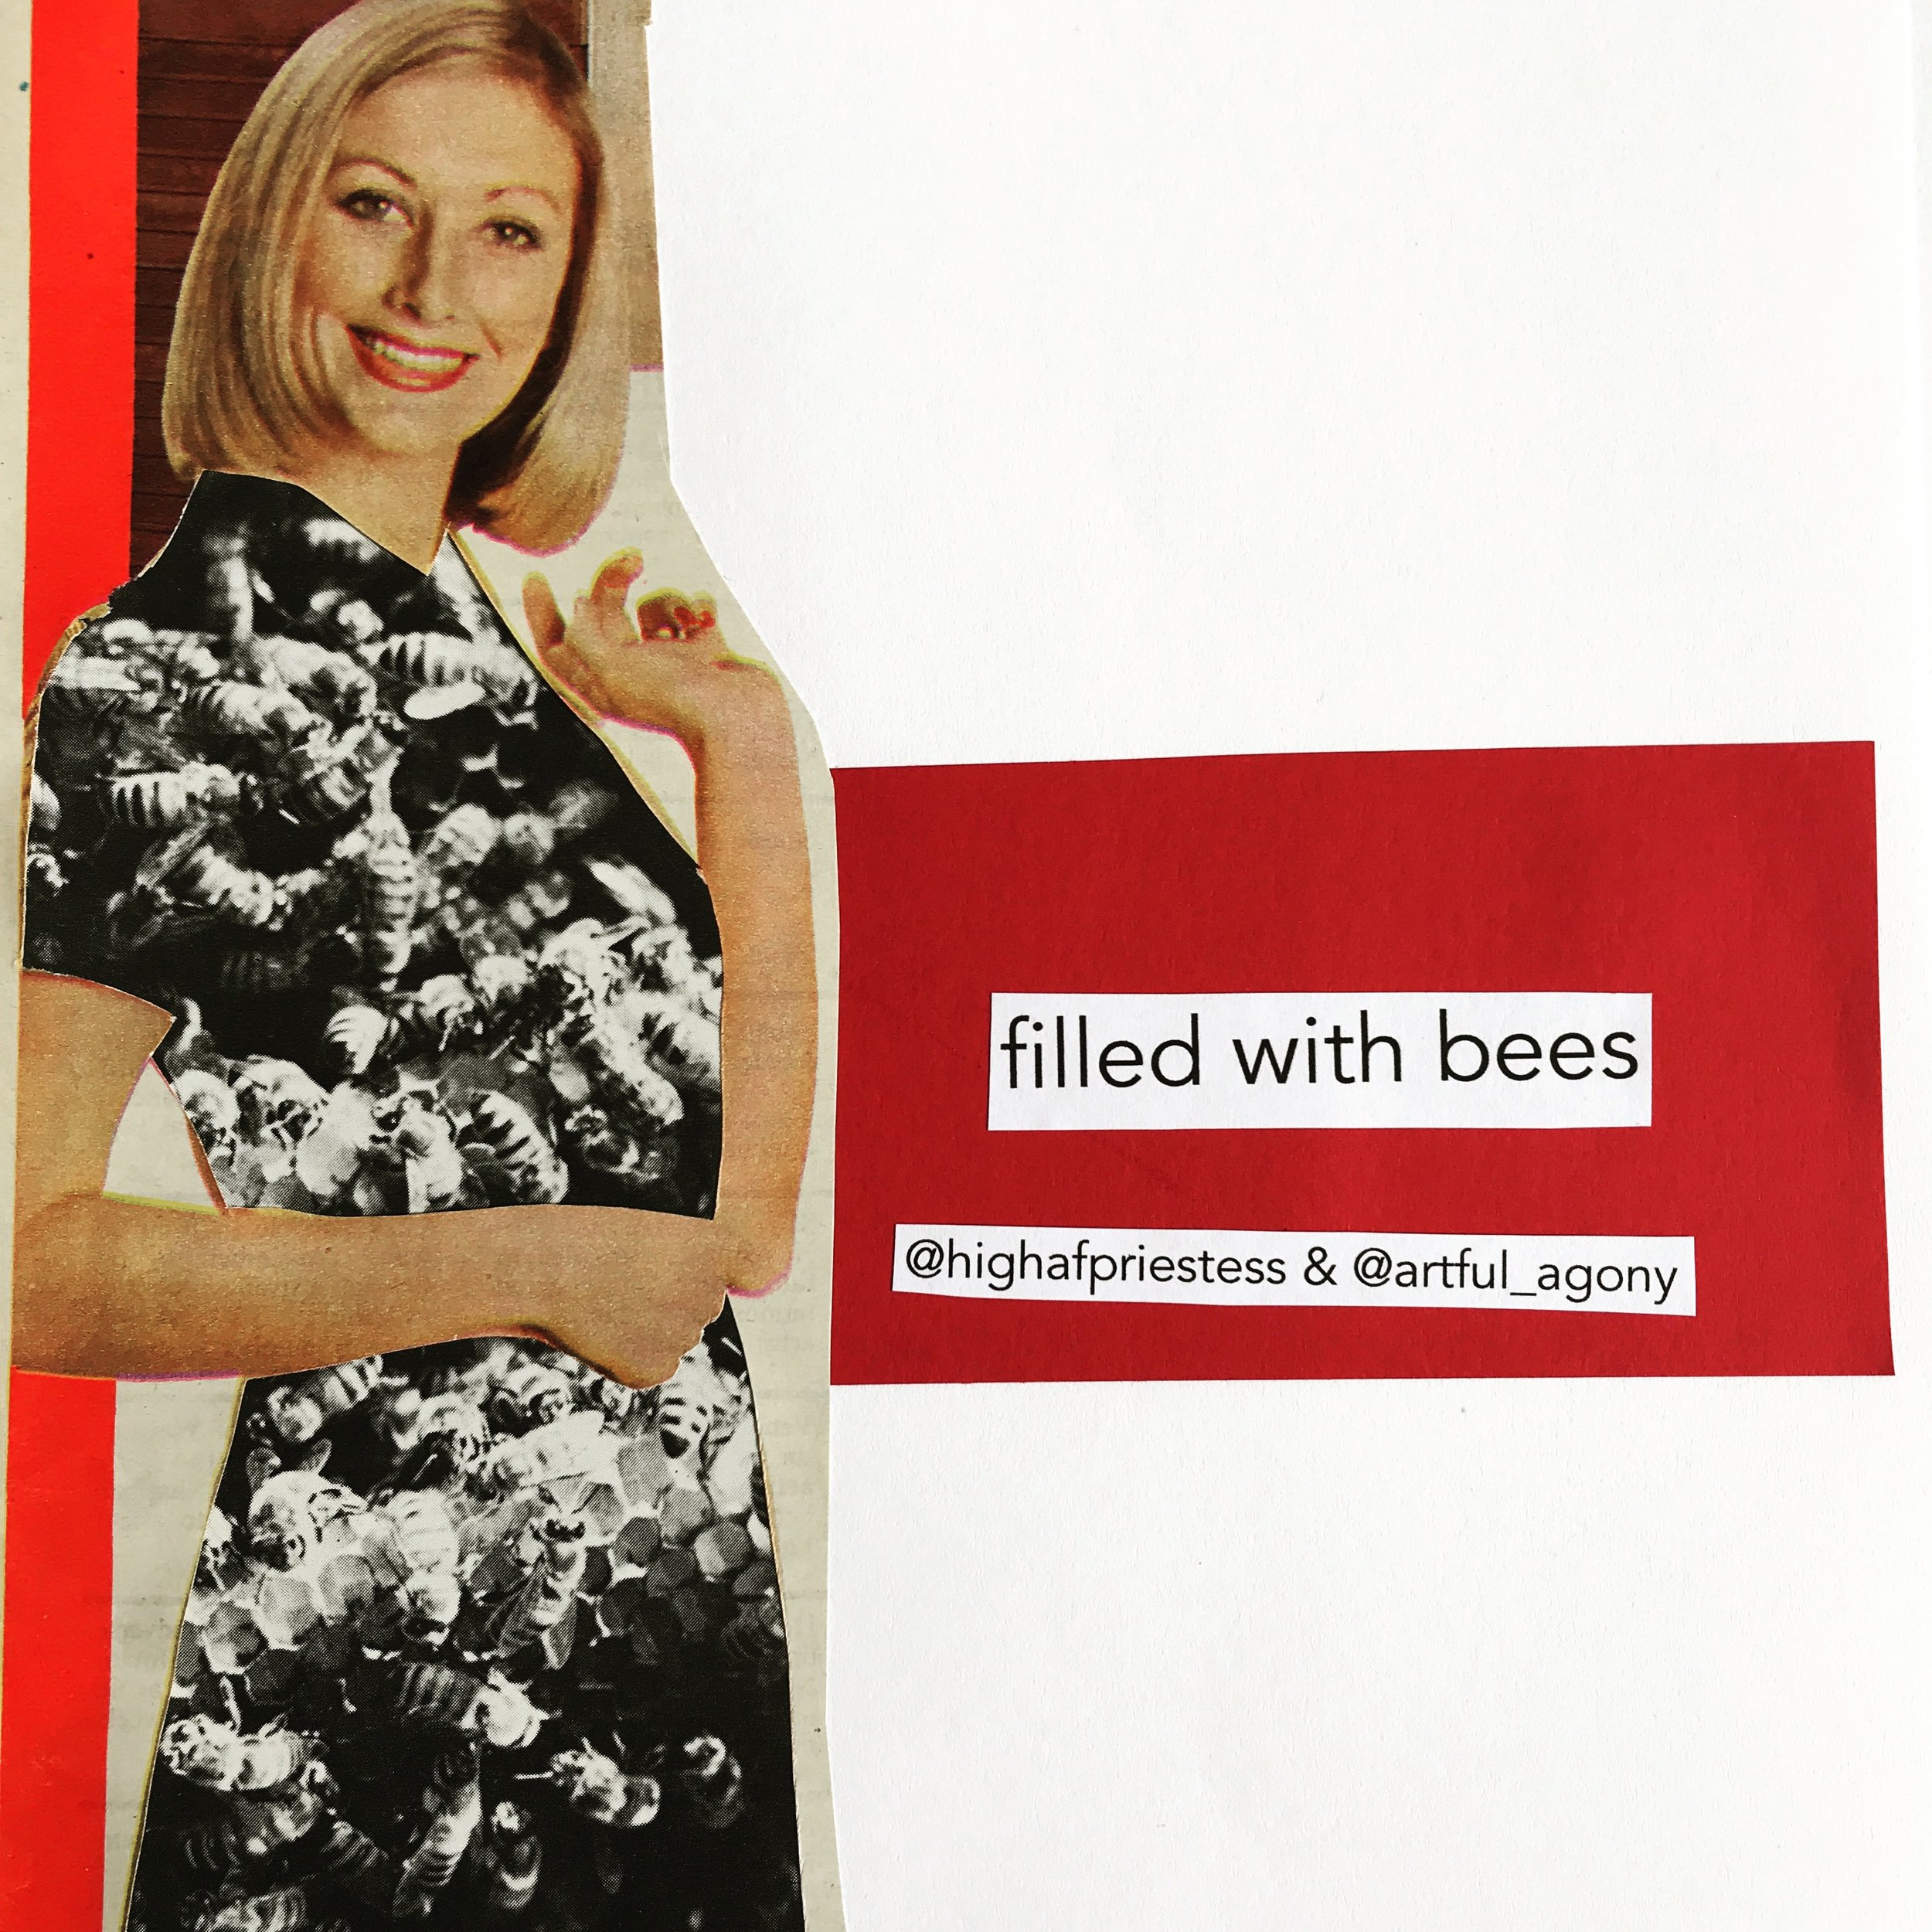 FILLED WITH BEES  'Filled with bees'  submitted by @highafpriestess